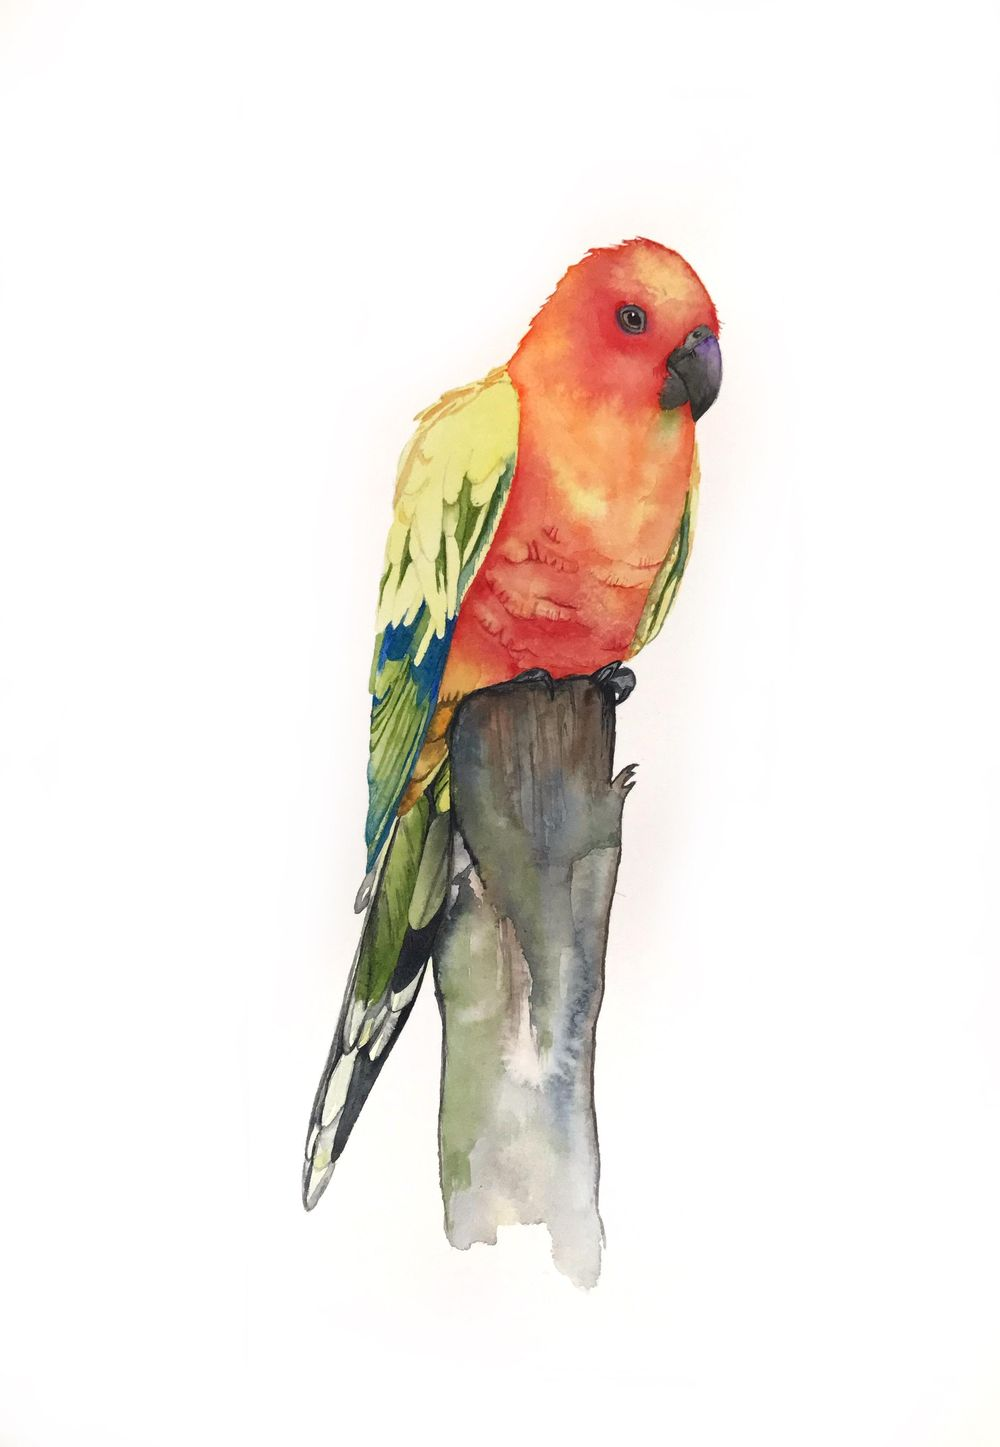 Sun Conure by Tipicactus - image 1 - student project